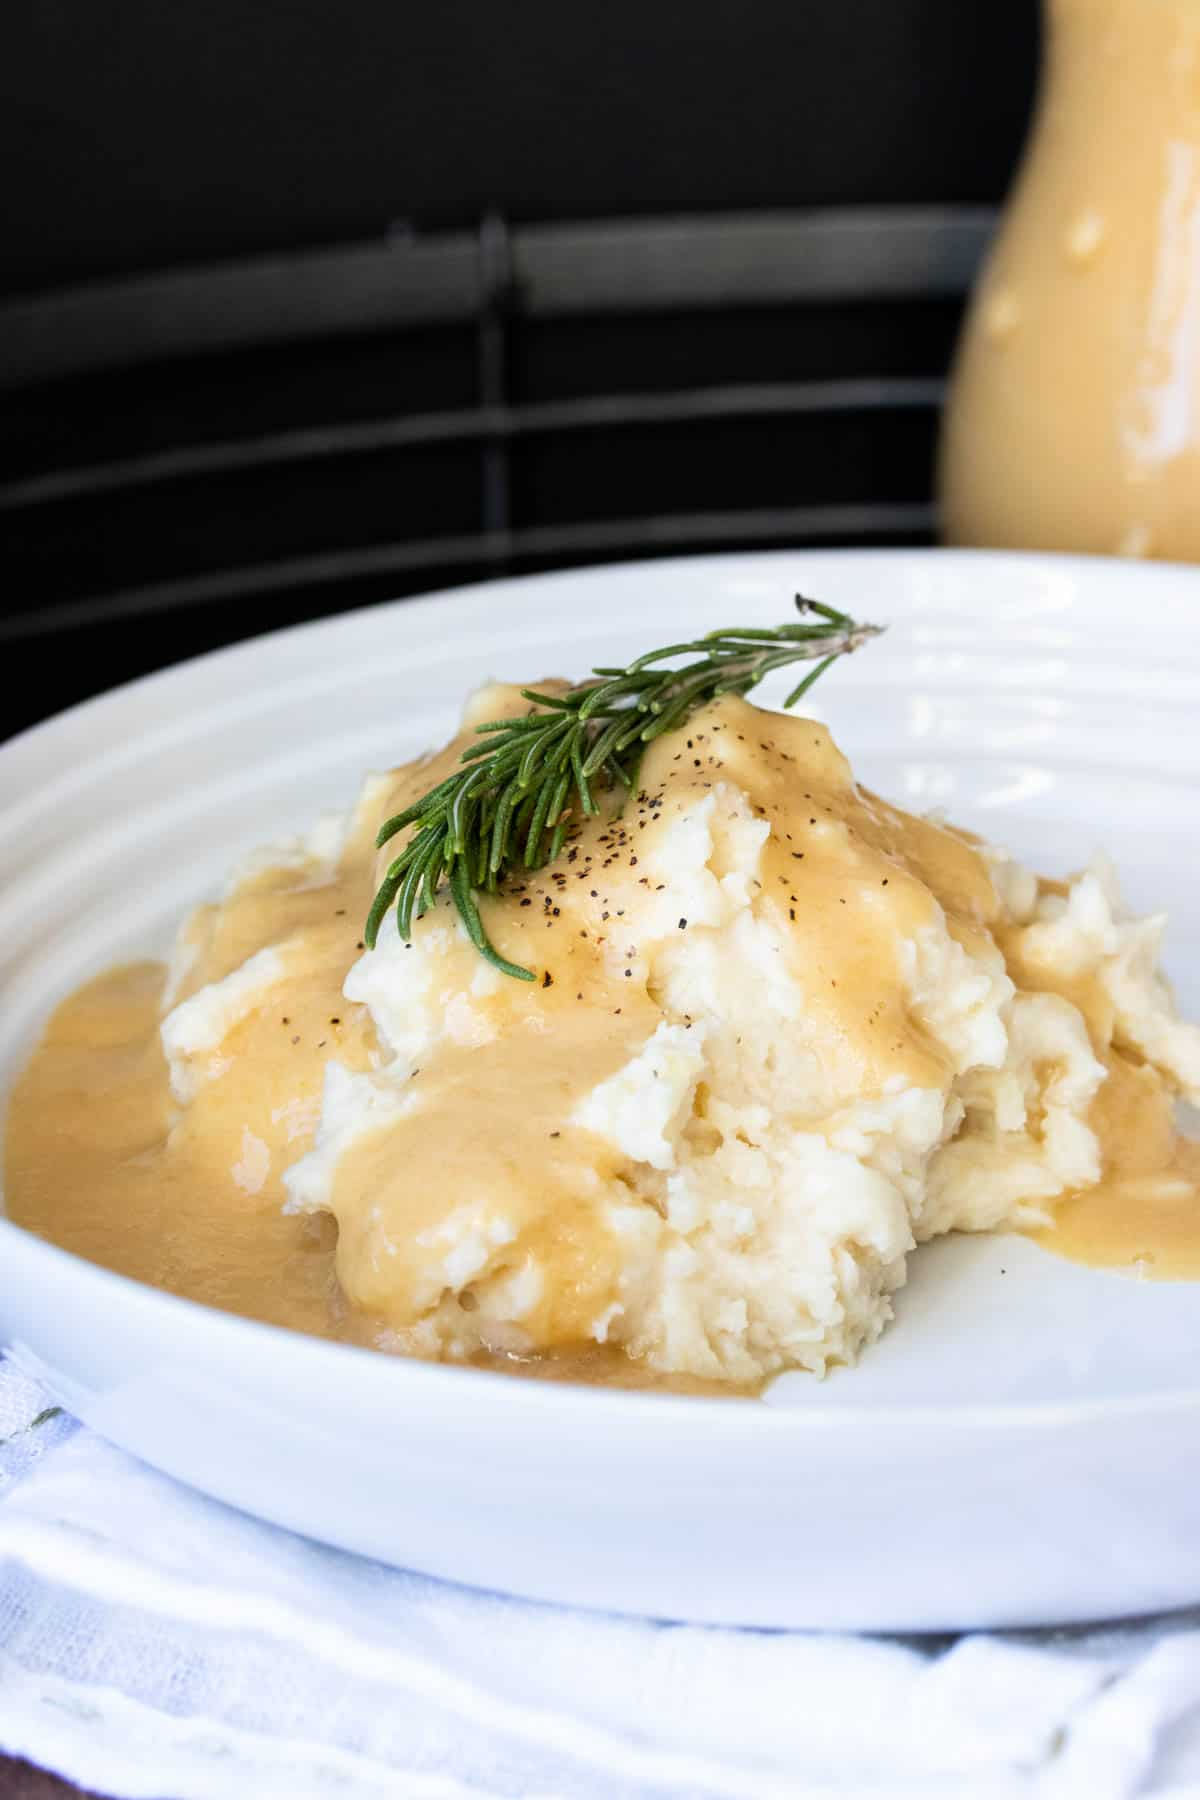 Gravy covered mashed potatoes with a sprig of rosemary on a white plate